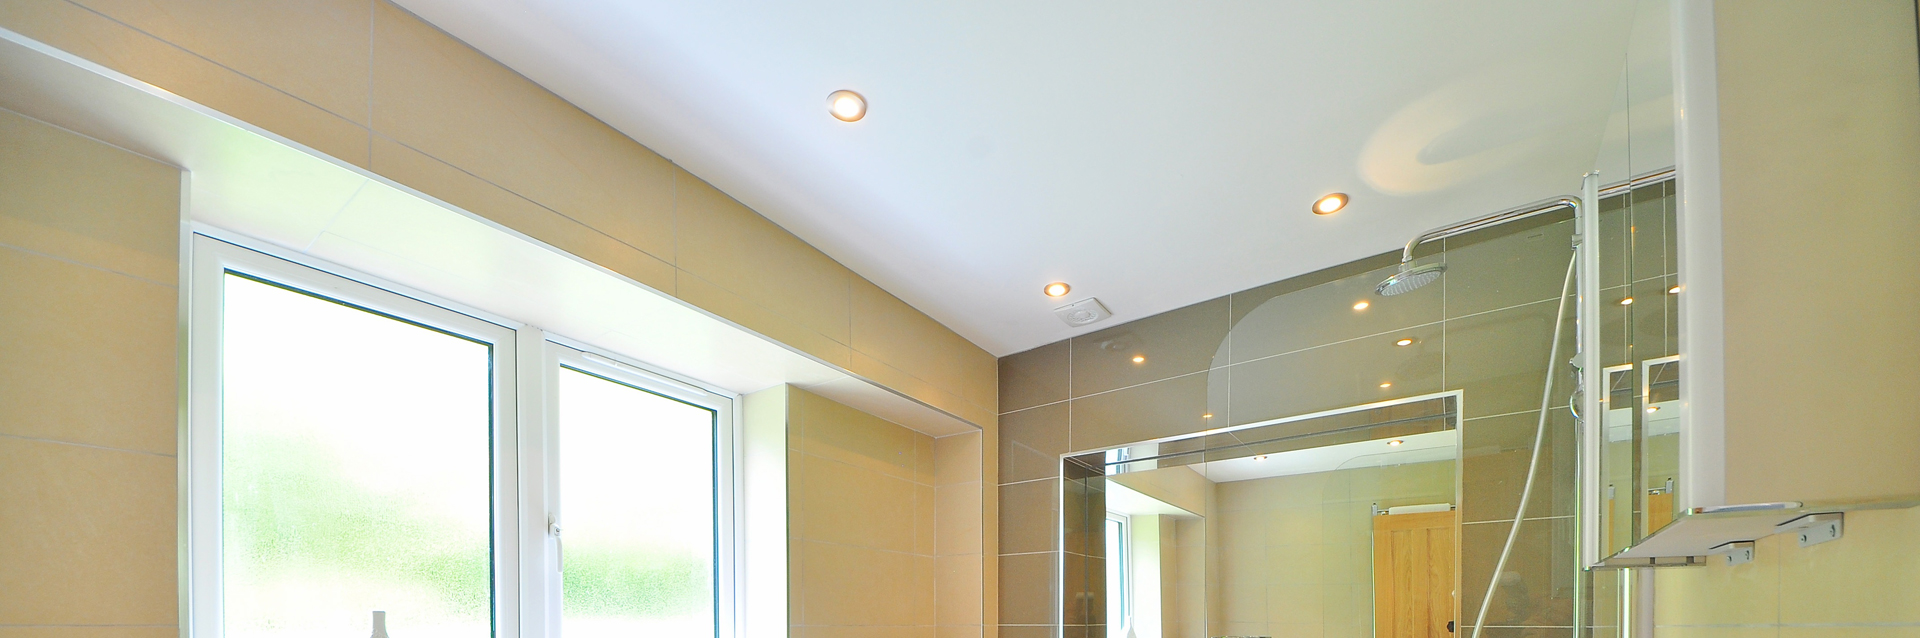 Bathroom Ceiling Material Which Option Is The Best